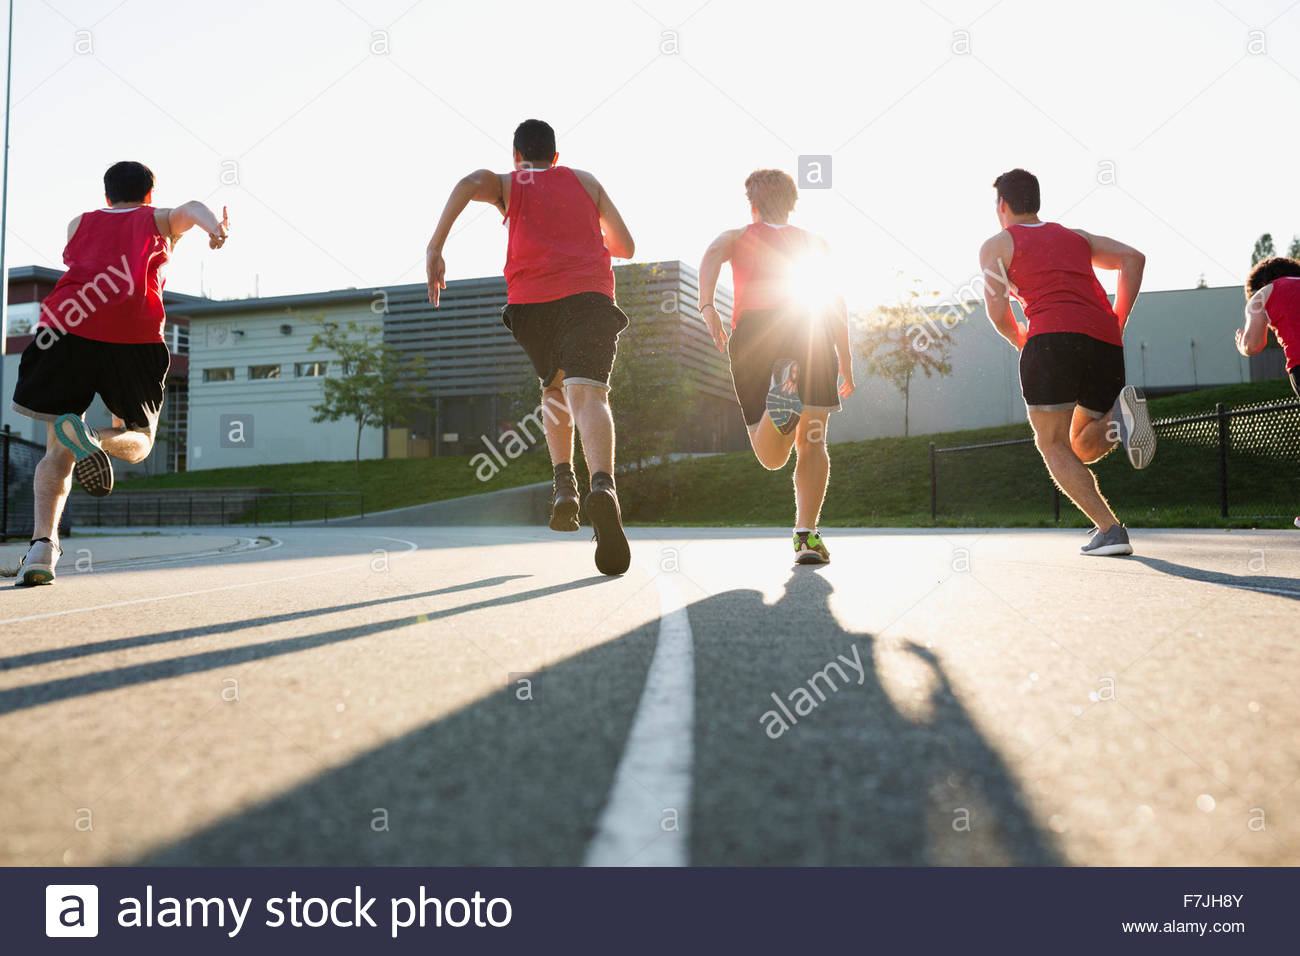 High school track and field athletes running track - Stock Image